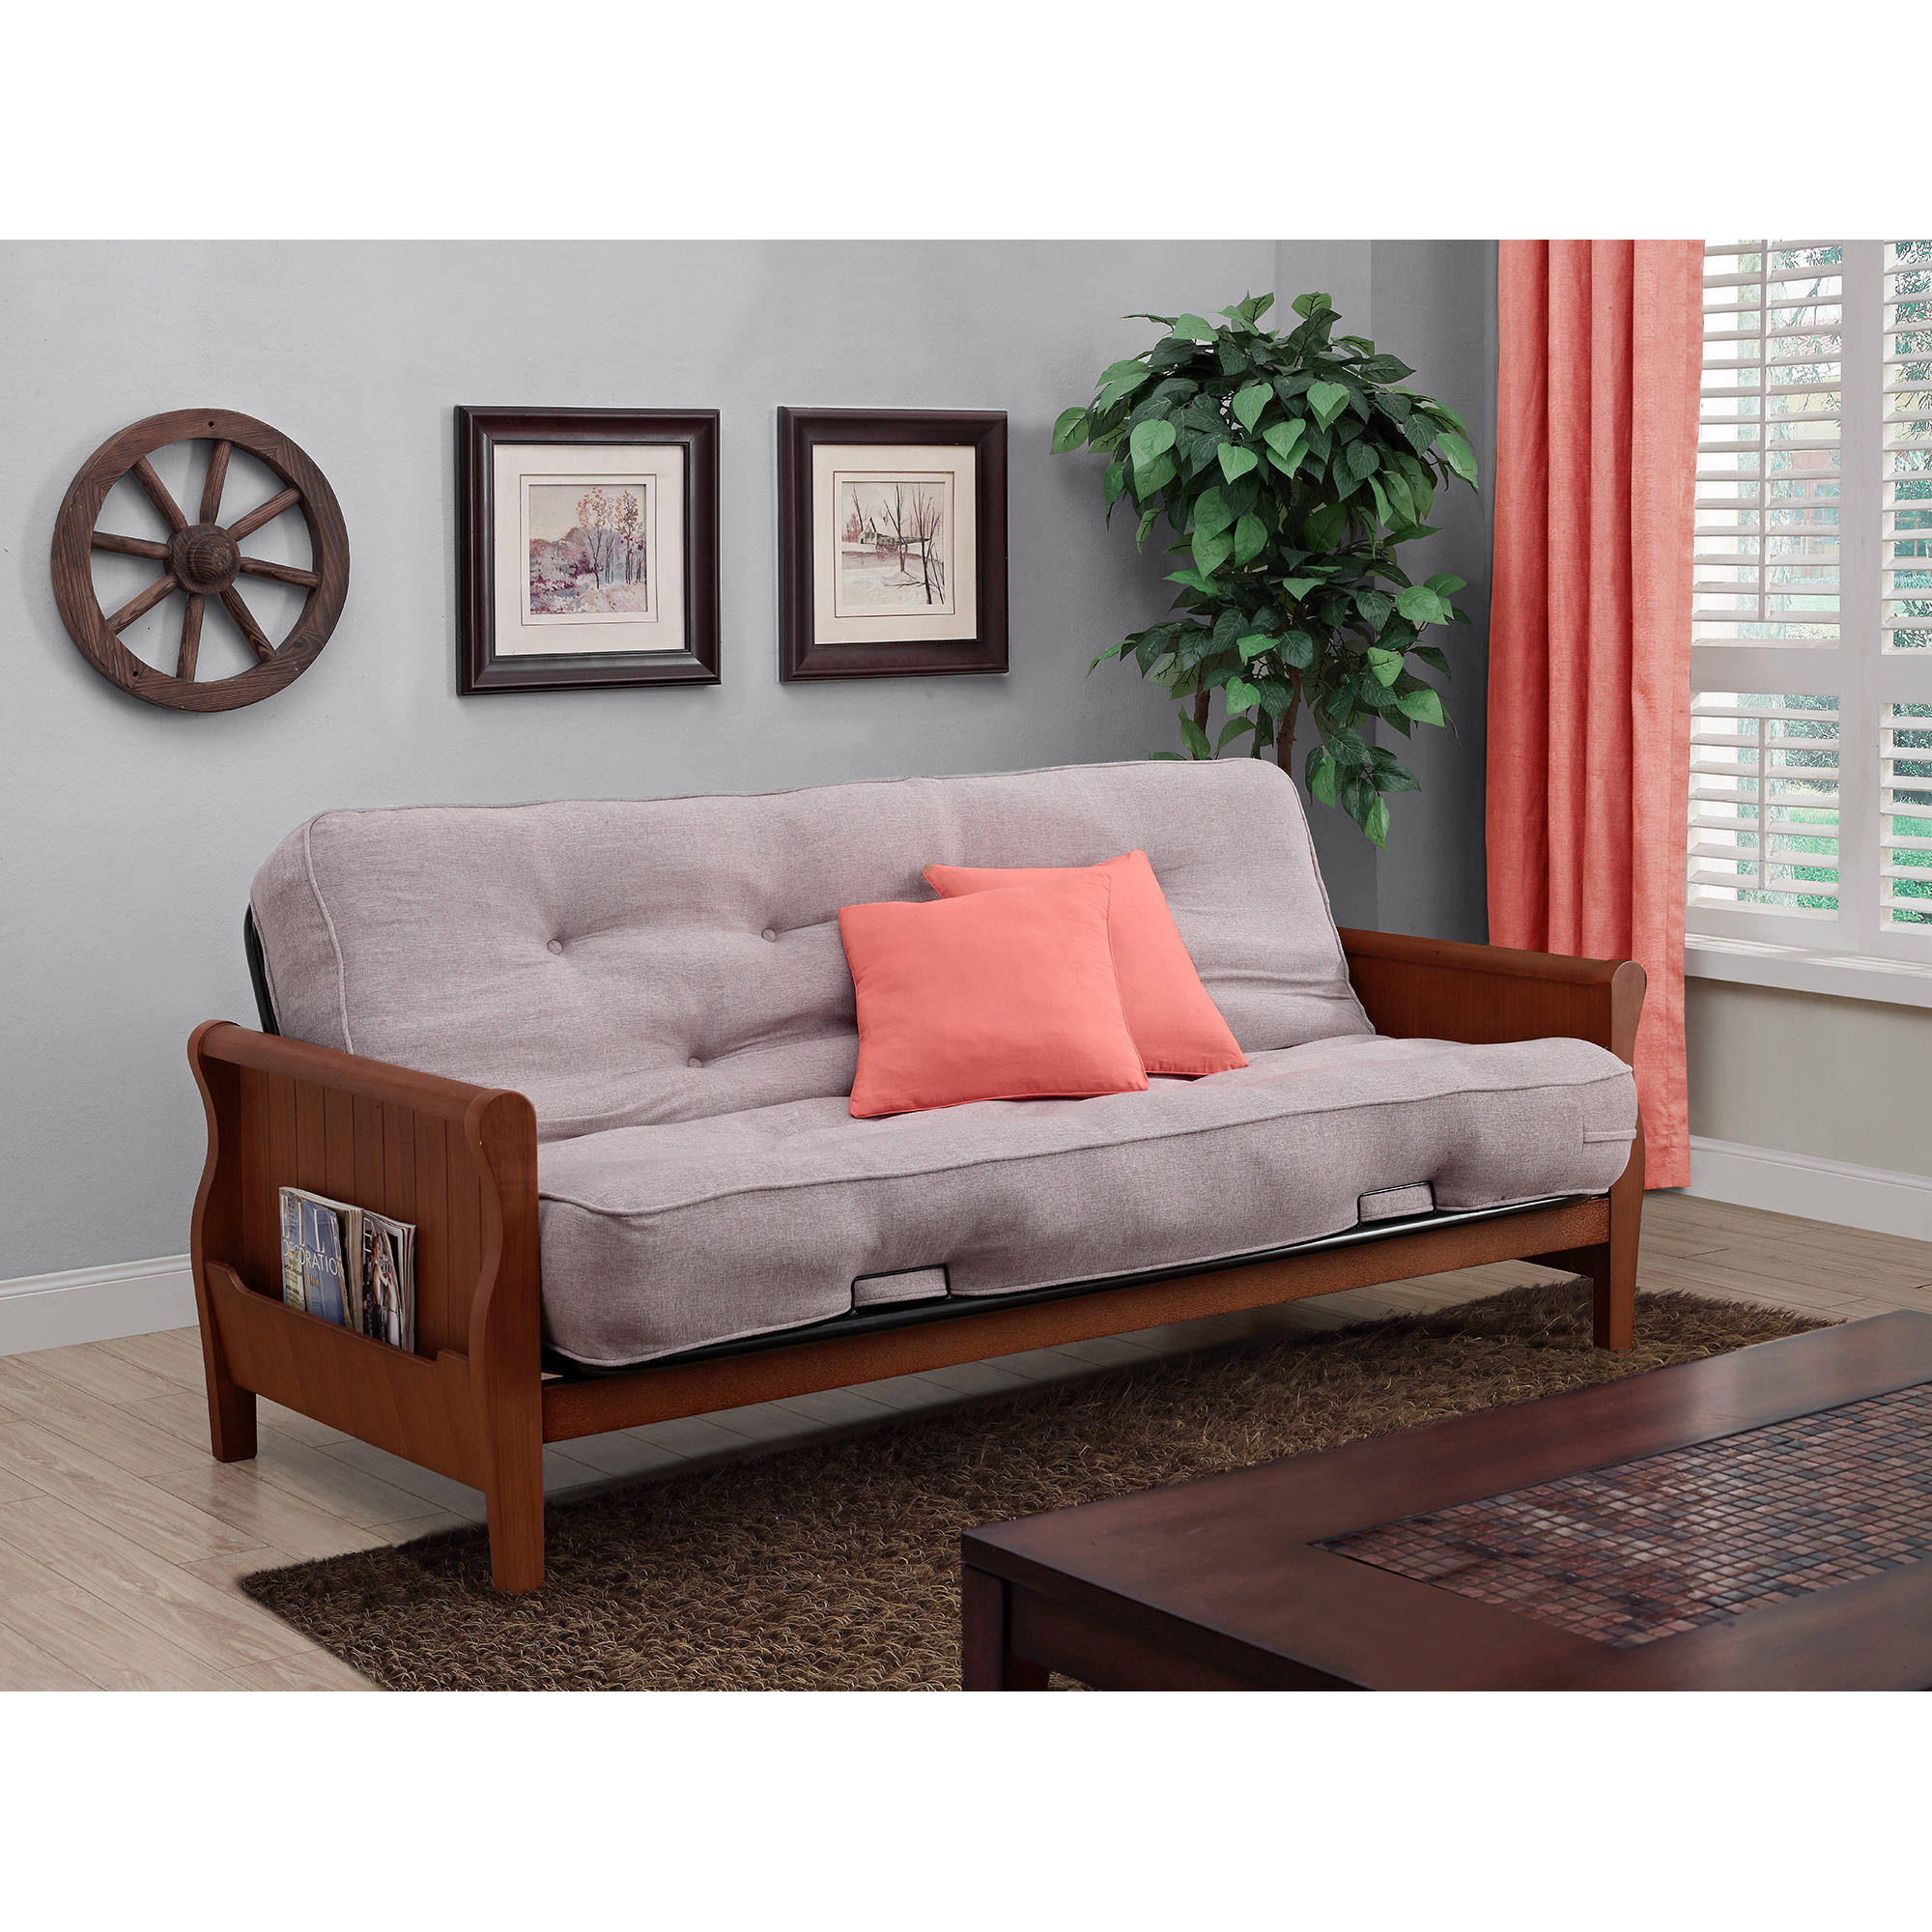 Better Homes and Gardens Wood Arm Futon with Coil Mattress, Multiple Colors